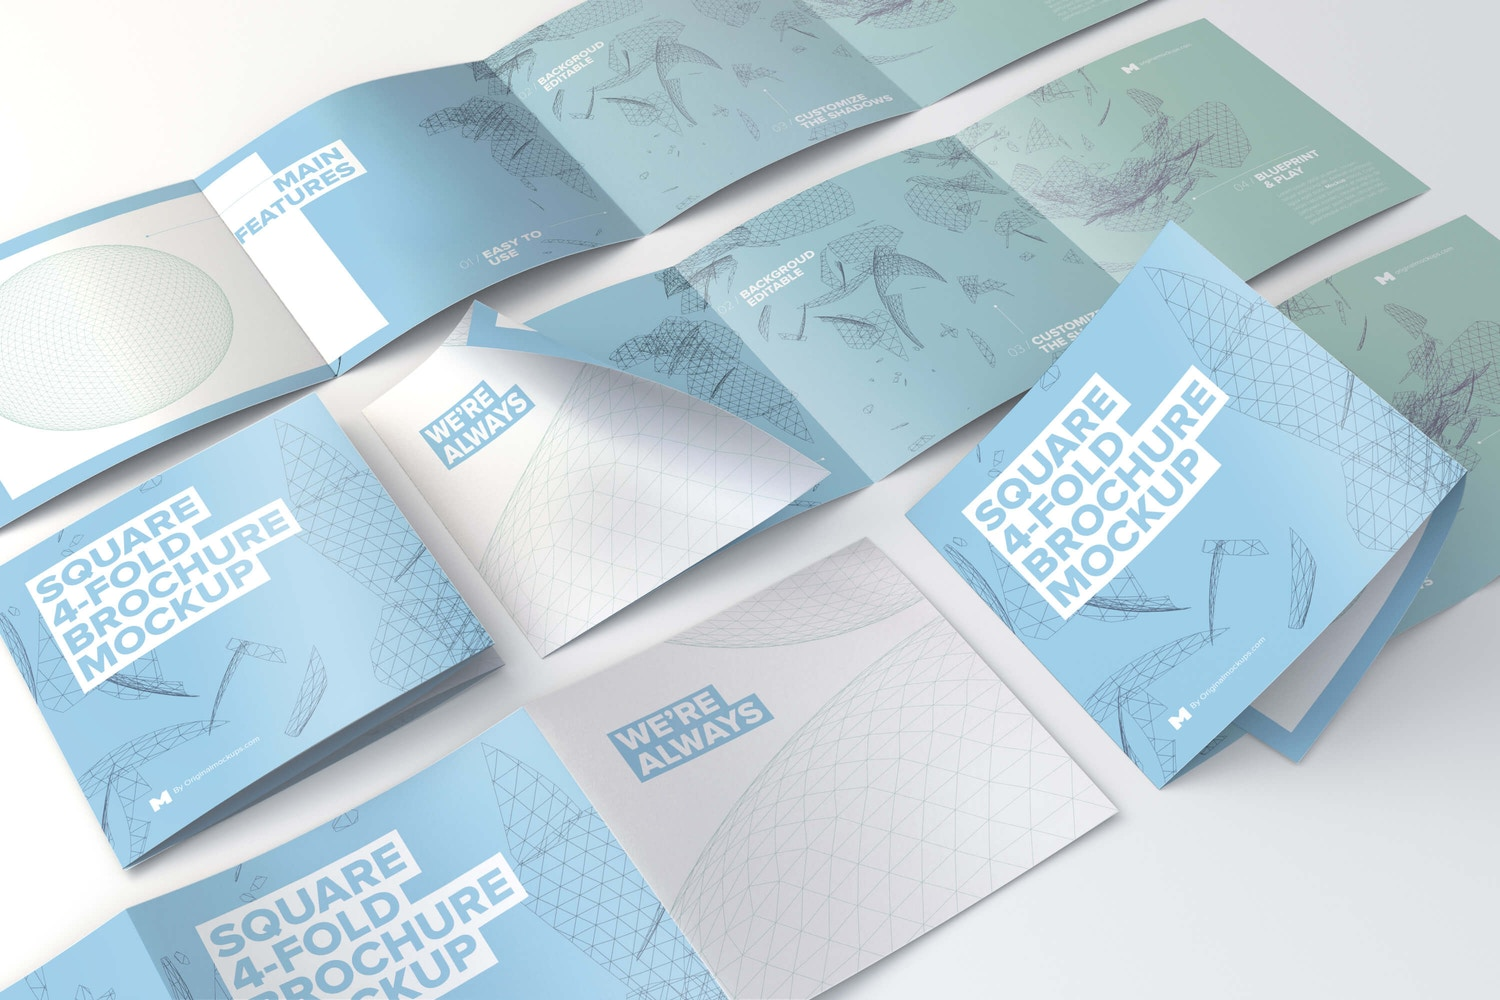 Square 4-Fold Brochure Grid Layout Mockup by Original Mockups on Original Mockups